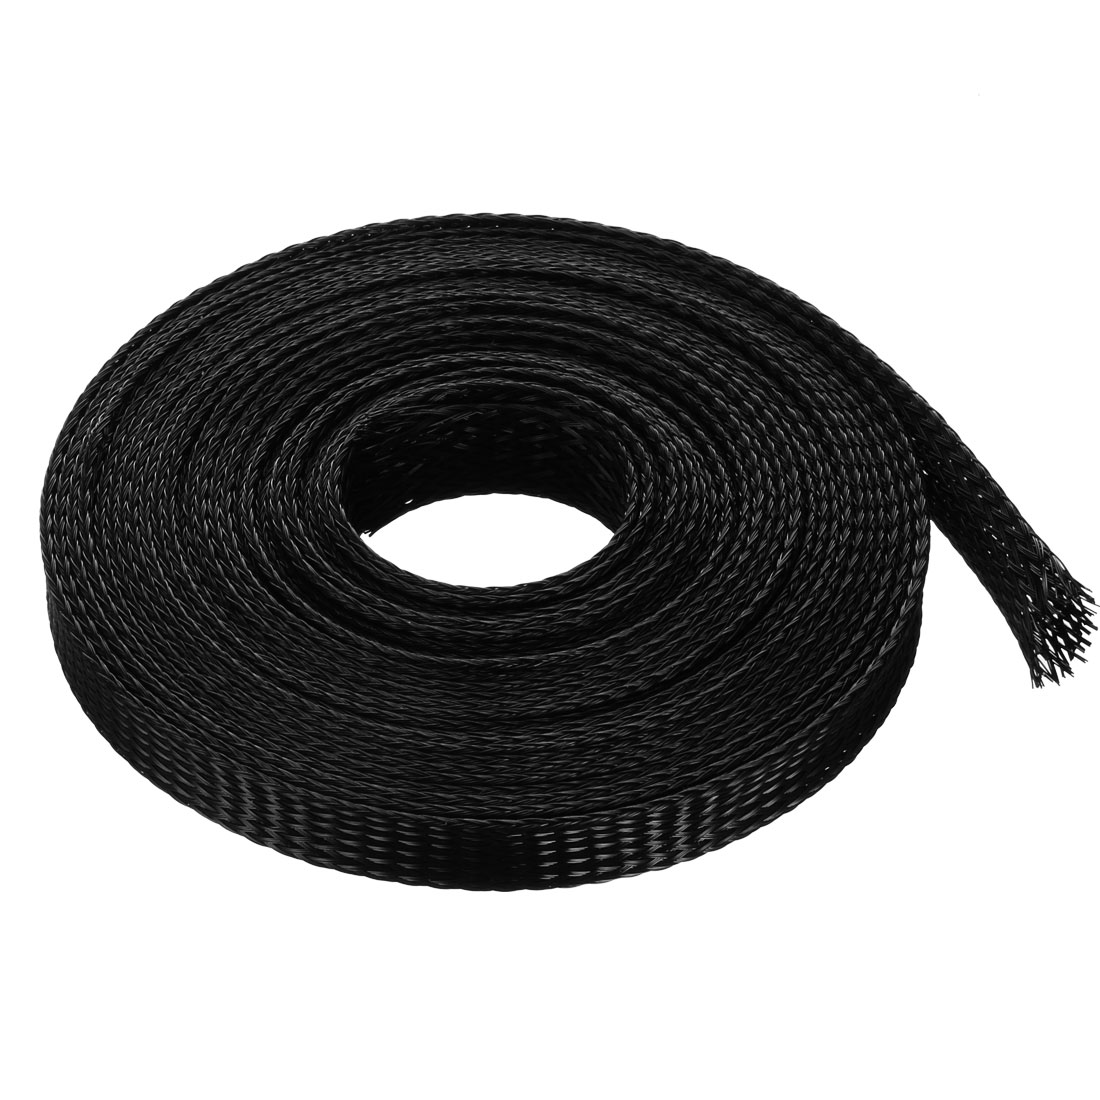 12mm Flat Dia Tight Braided PET Expandable Sleeving Cable Wrap Sheath Black 5M